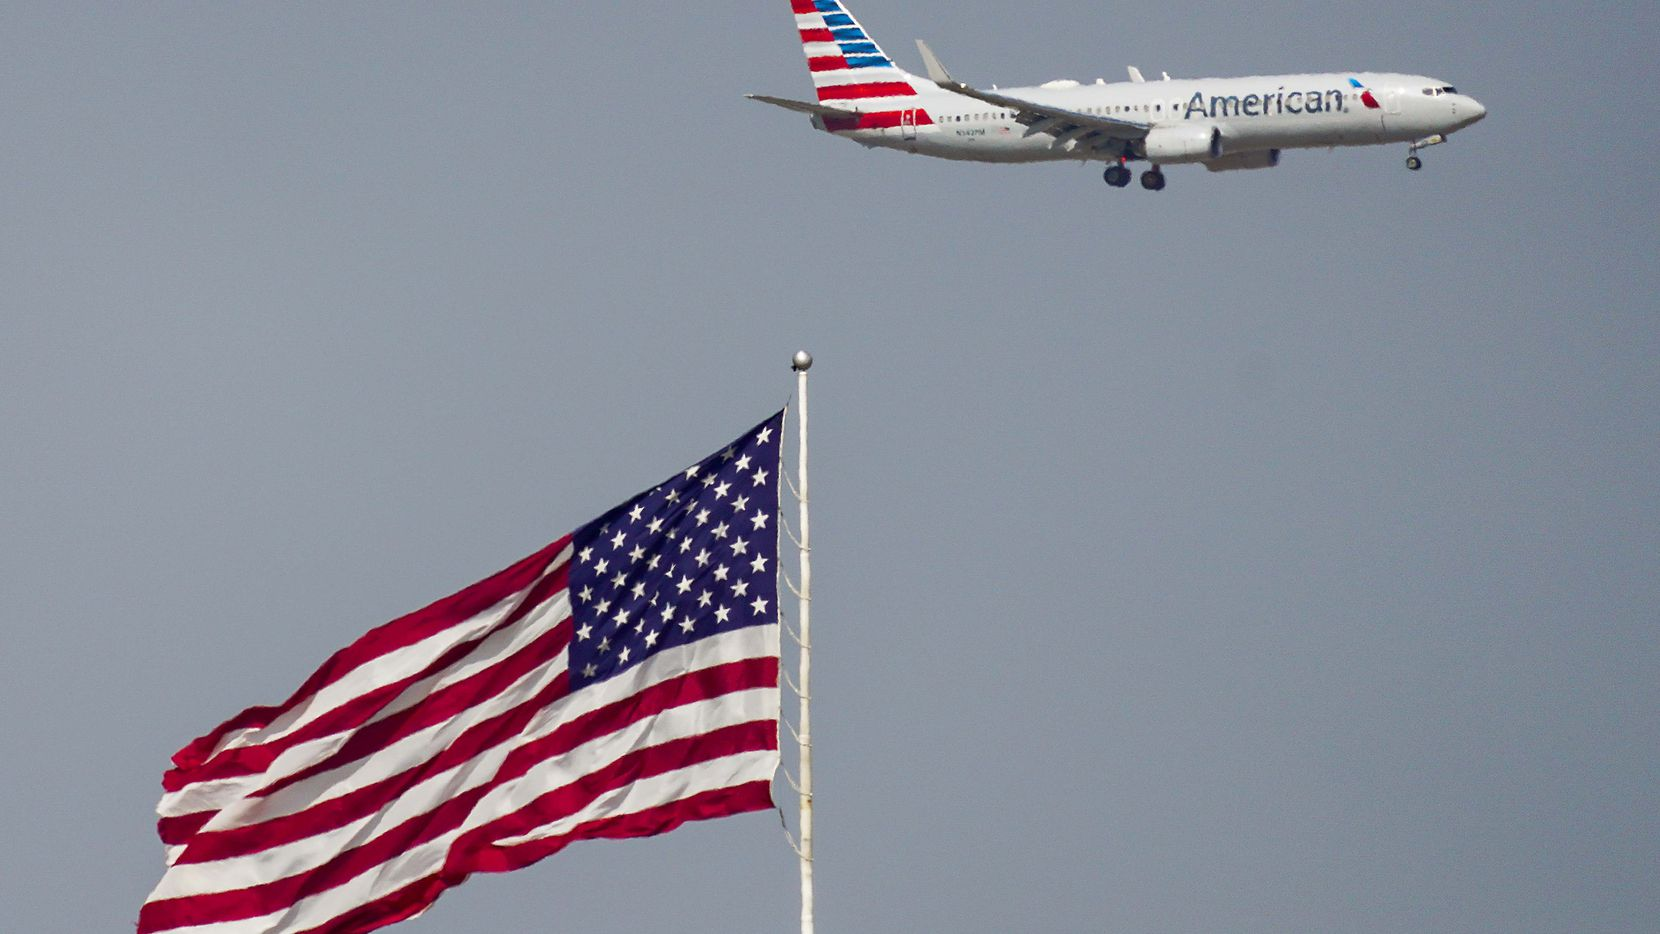 An American Airlines 737 descends for a landing at DFW International Airport on Tuesday, June 30, 2020.